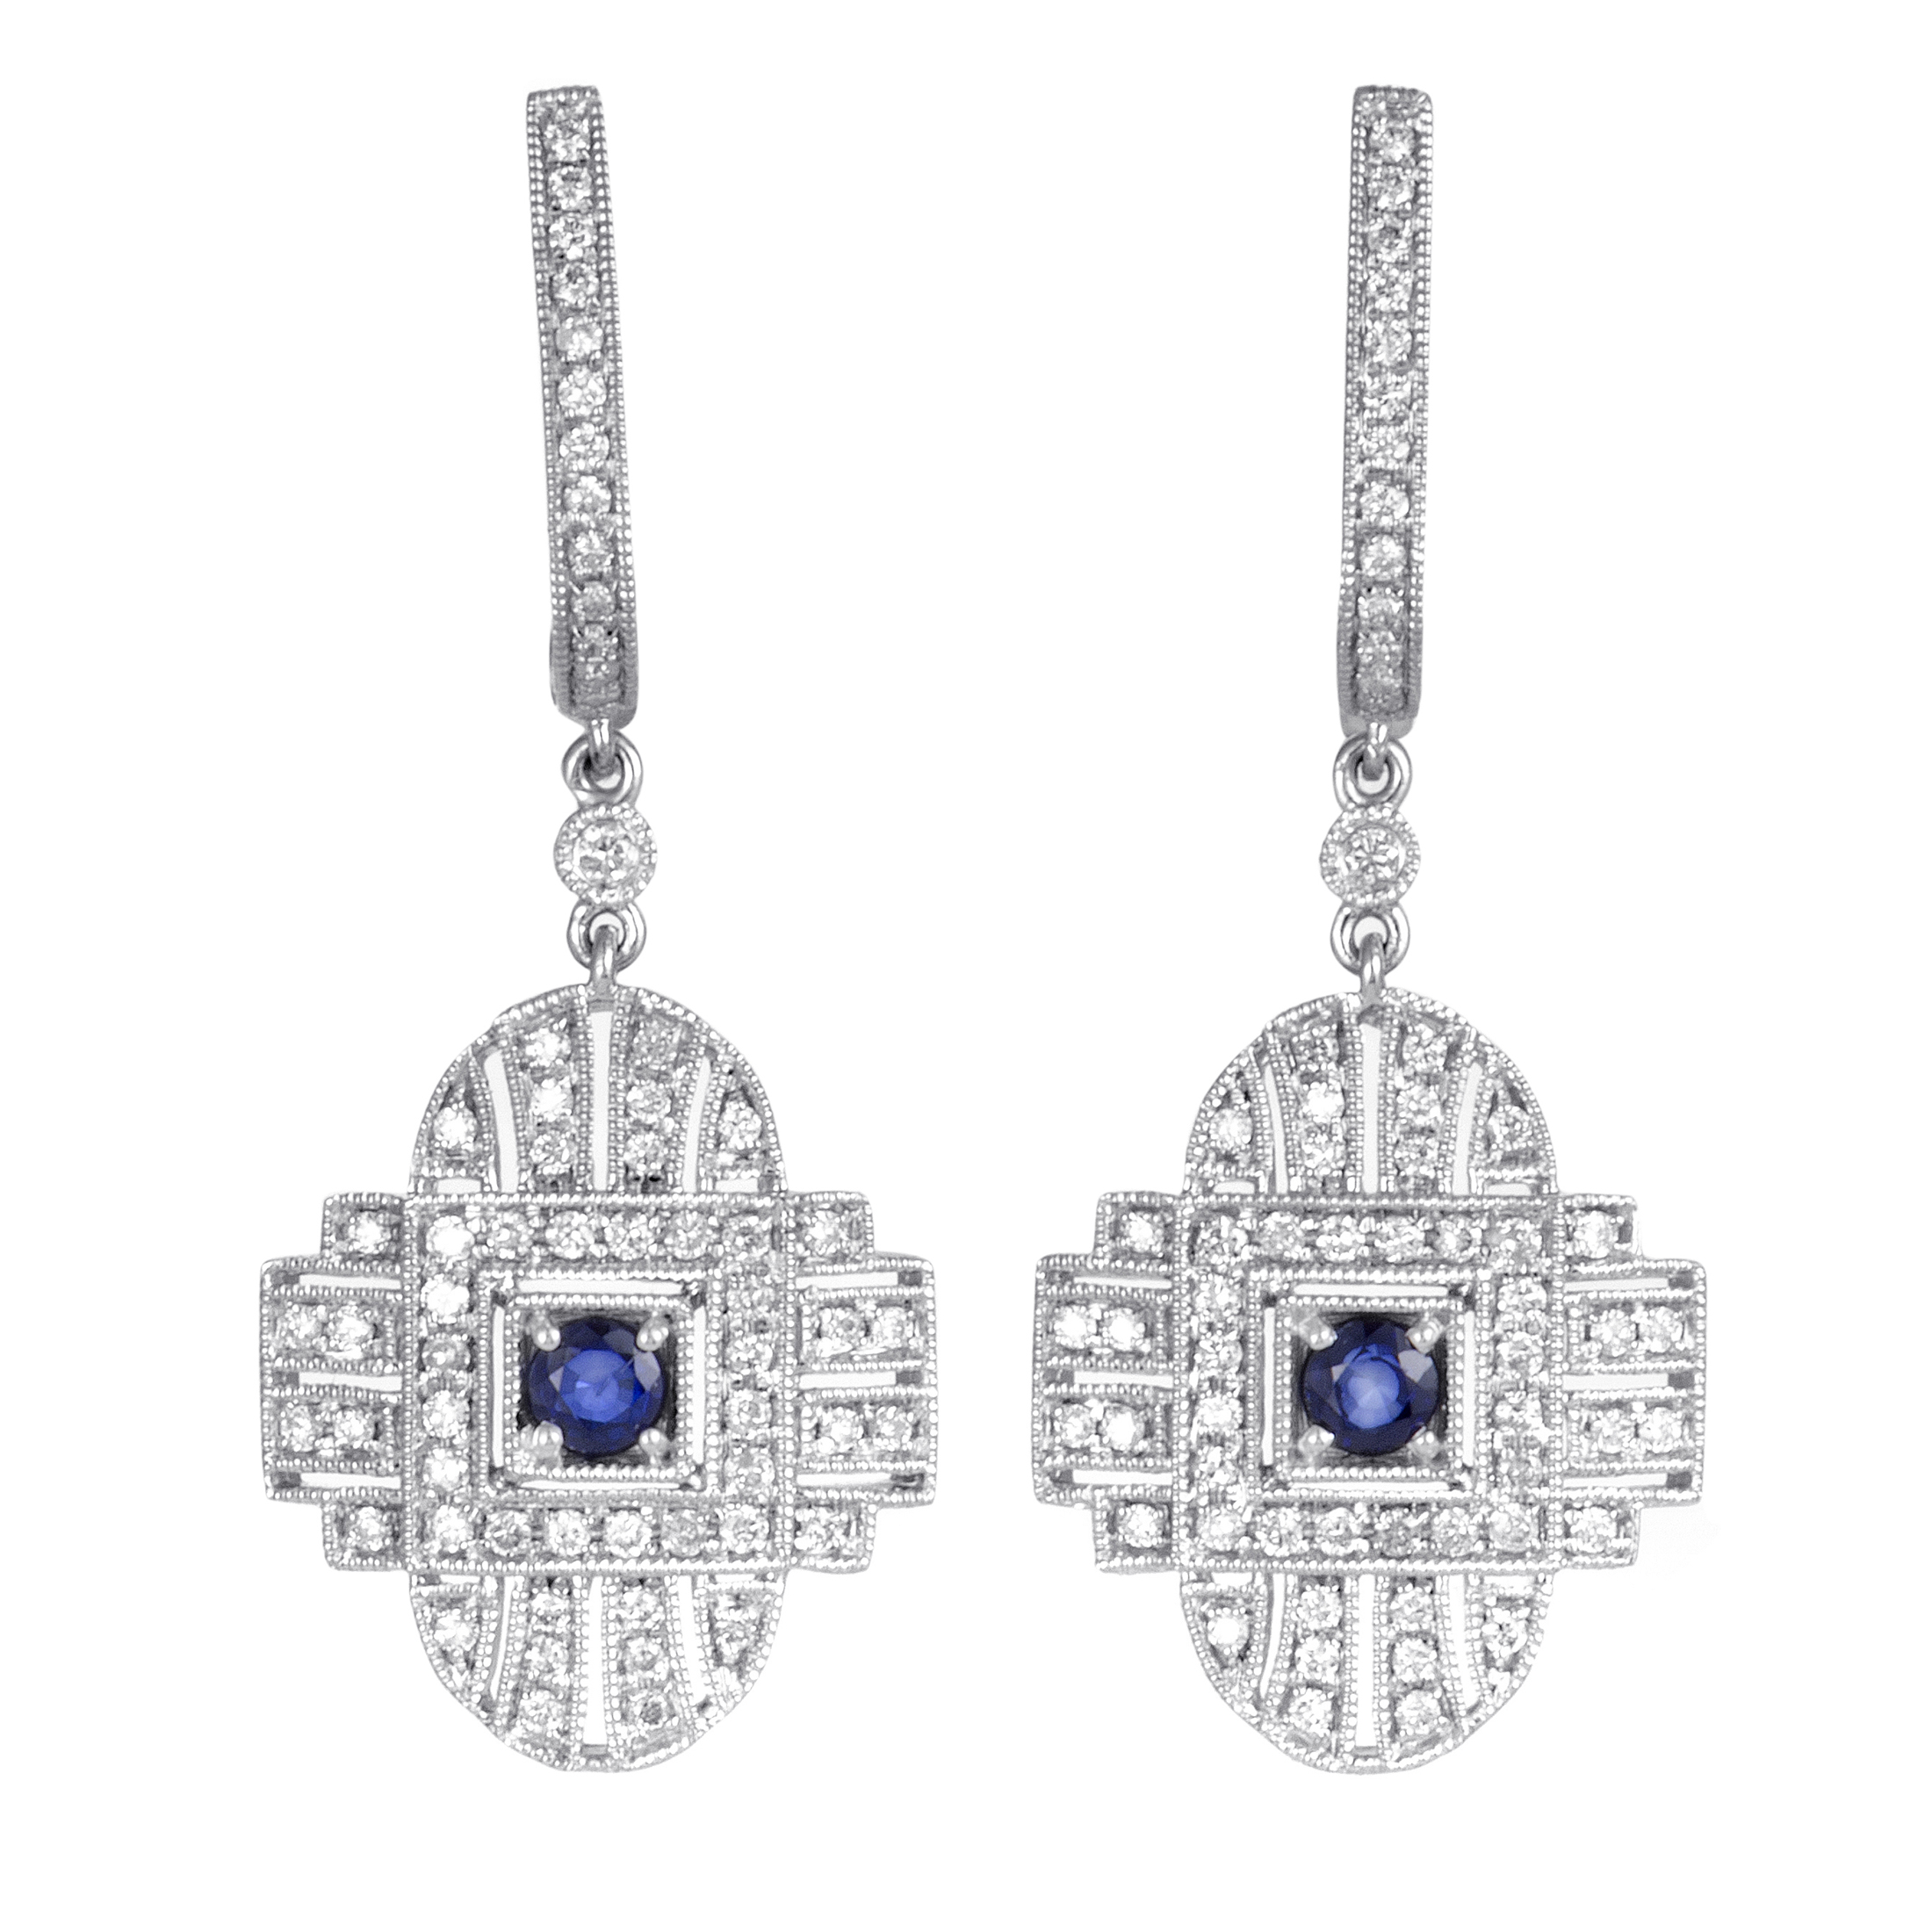 Womens 18K White Gold Diamond and Sapphire Dangle Earrings